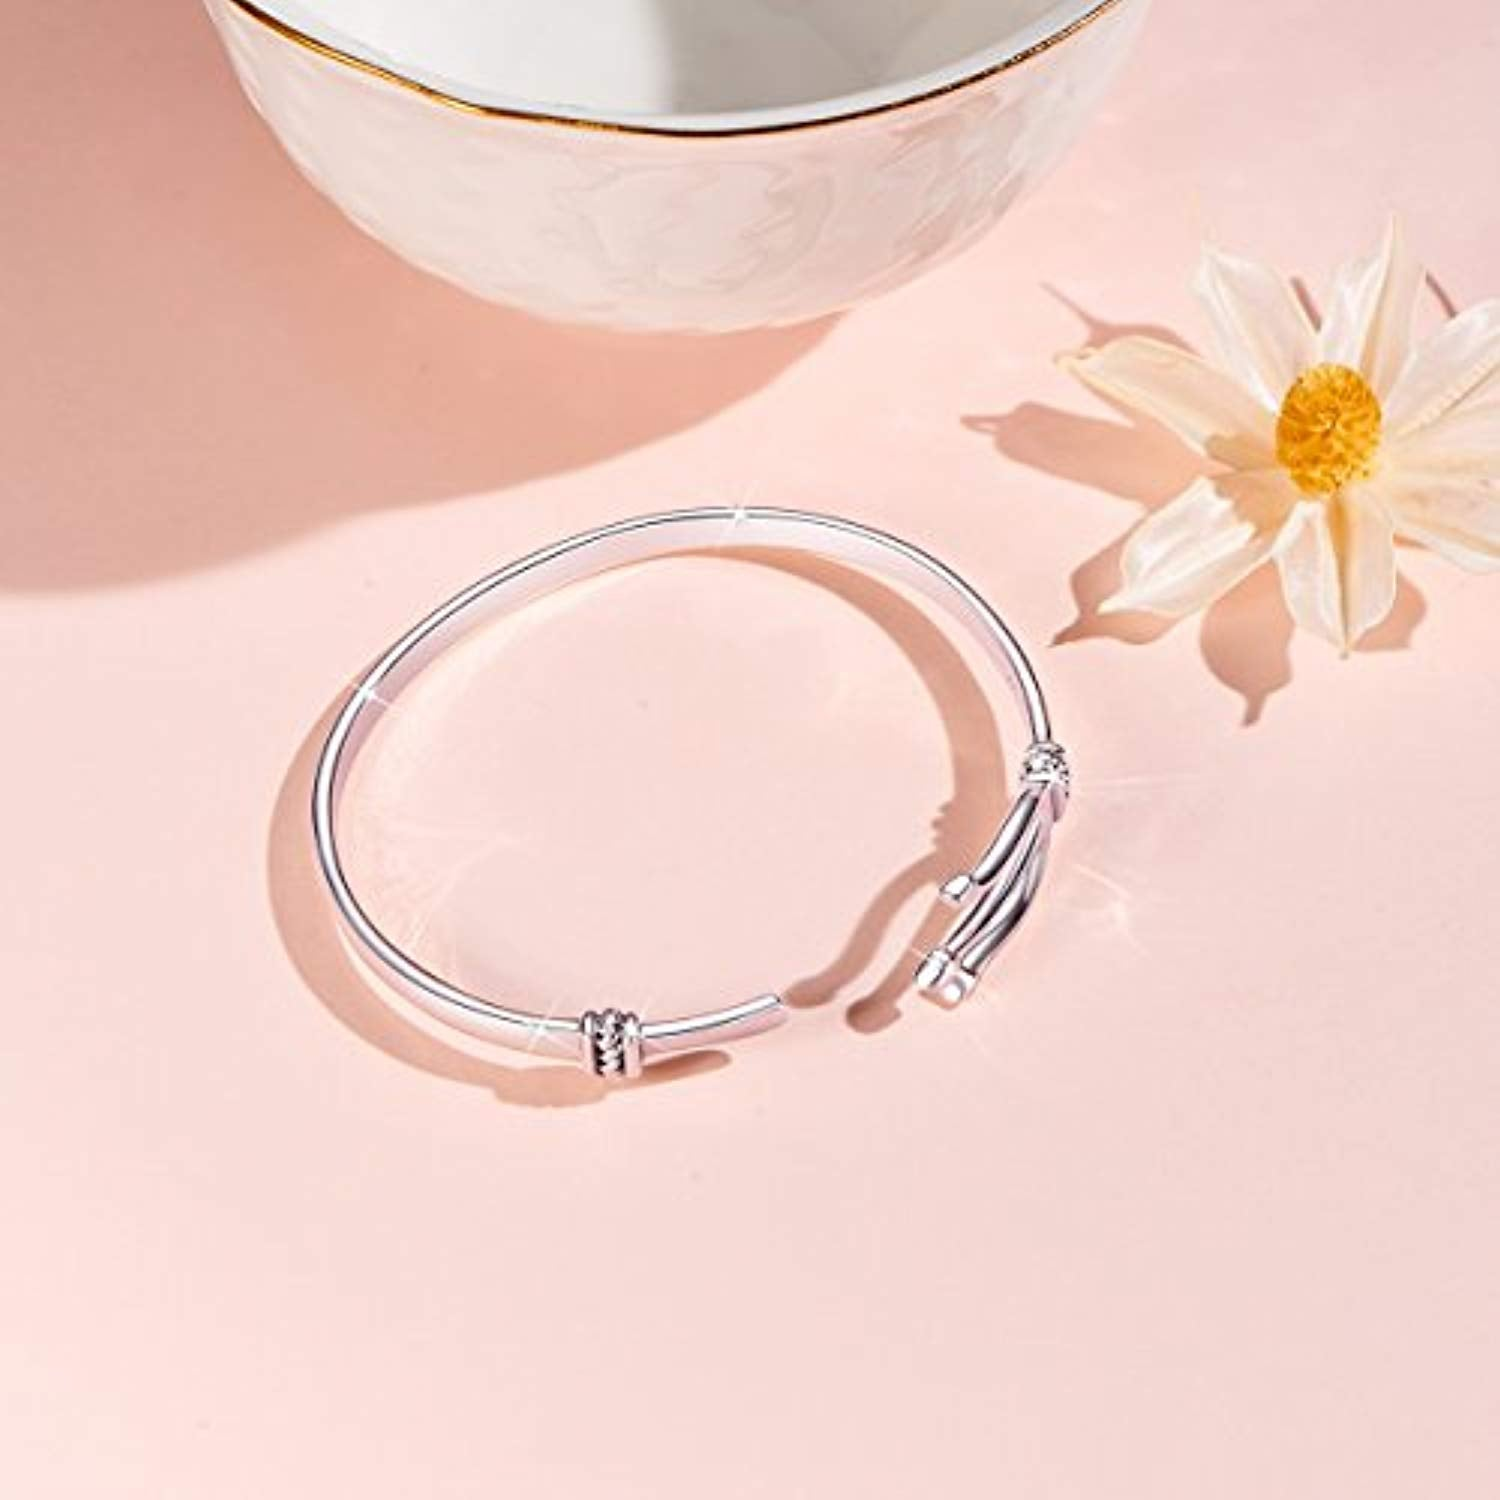 Cool Bangle Bracelet 925 Sterling Silver Open Bangle with Fork Charm